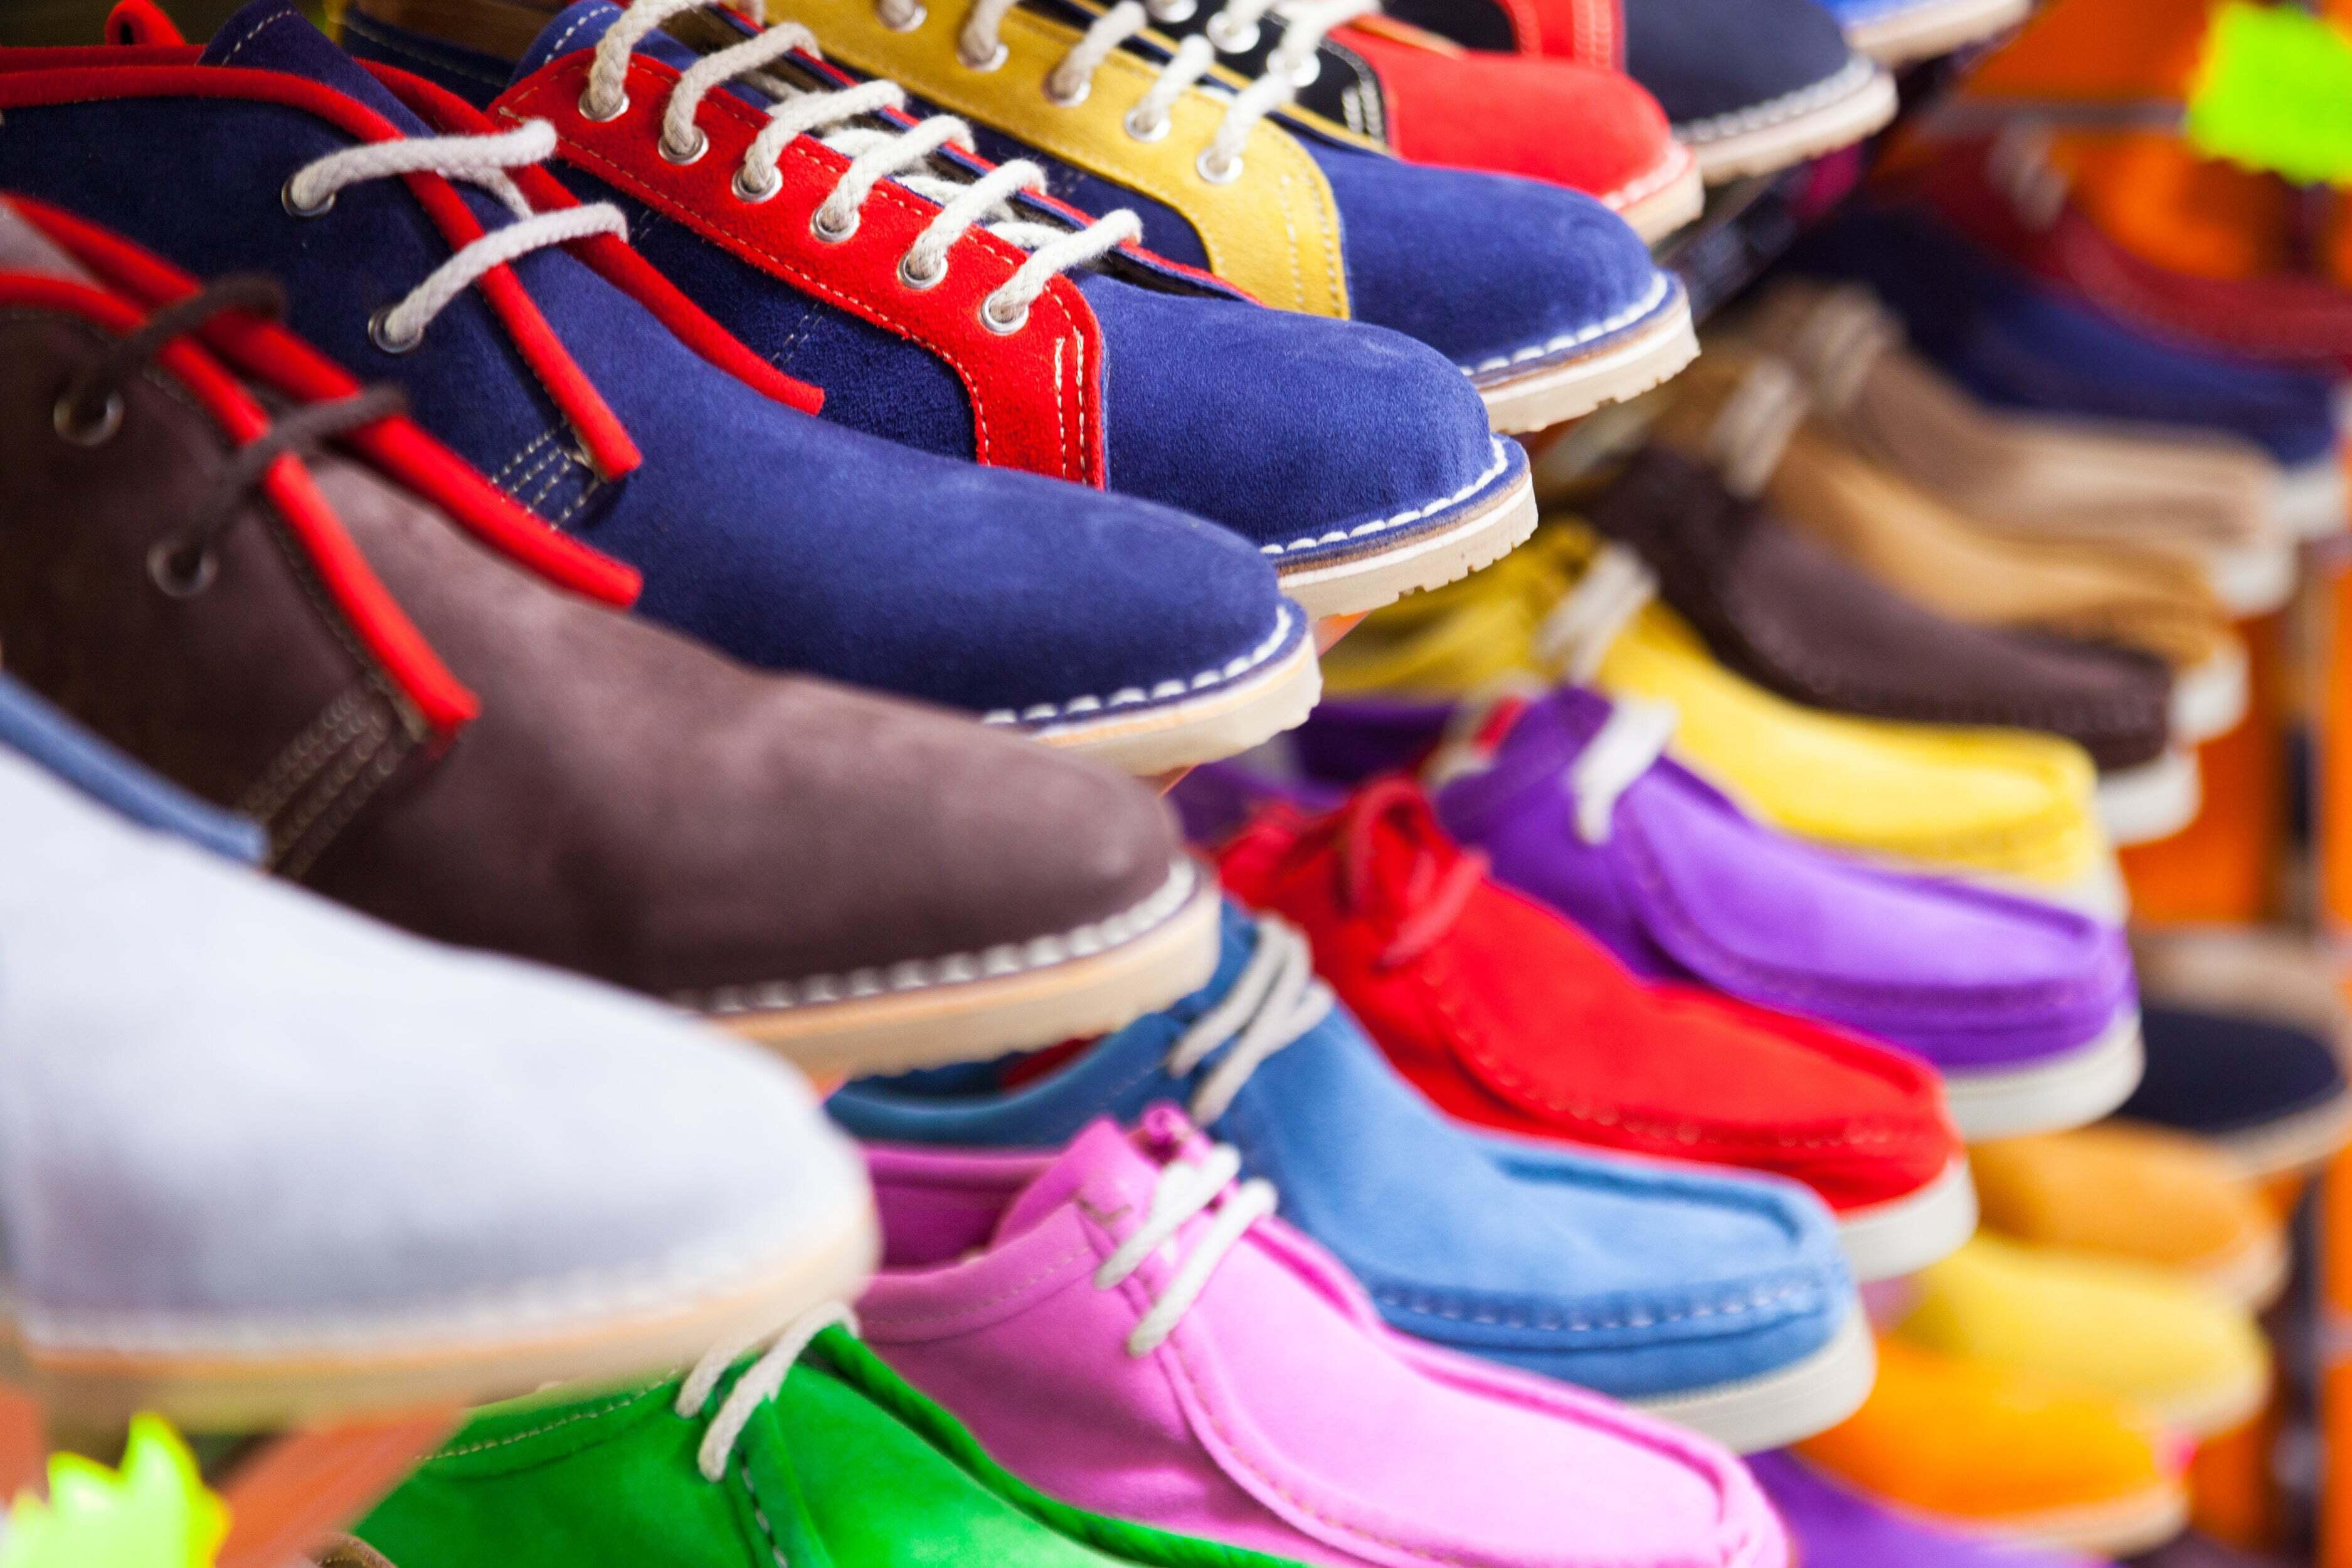 Colorful shoes lined up next to each other